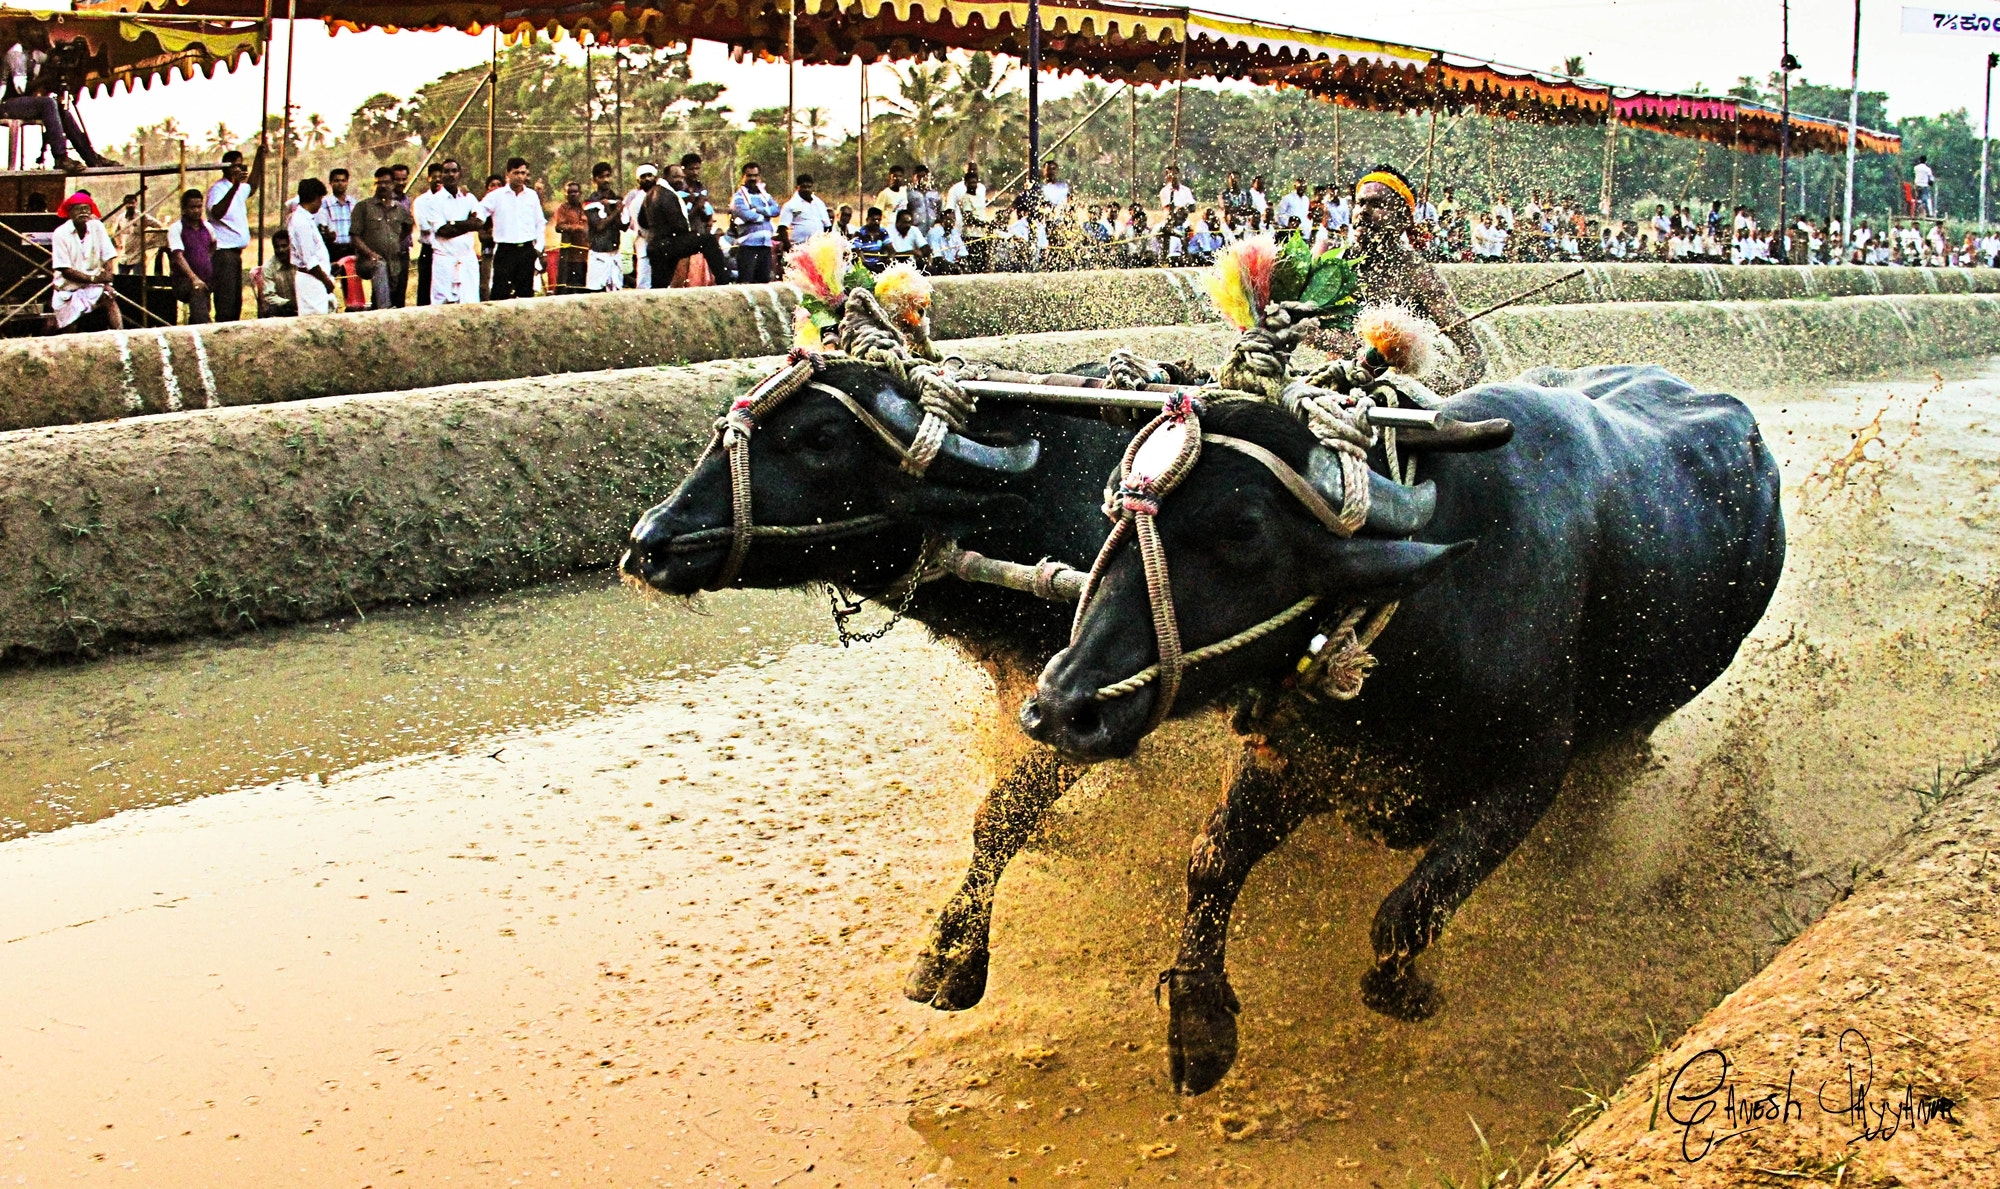 Photograph Reaching the finish line by Ganesh Payyanur on 500px